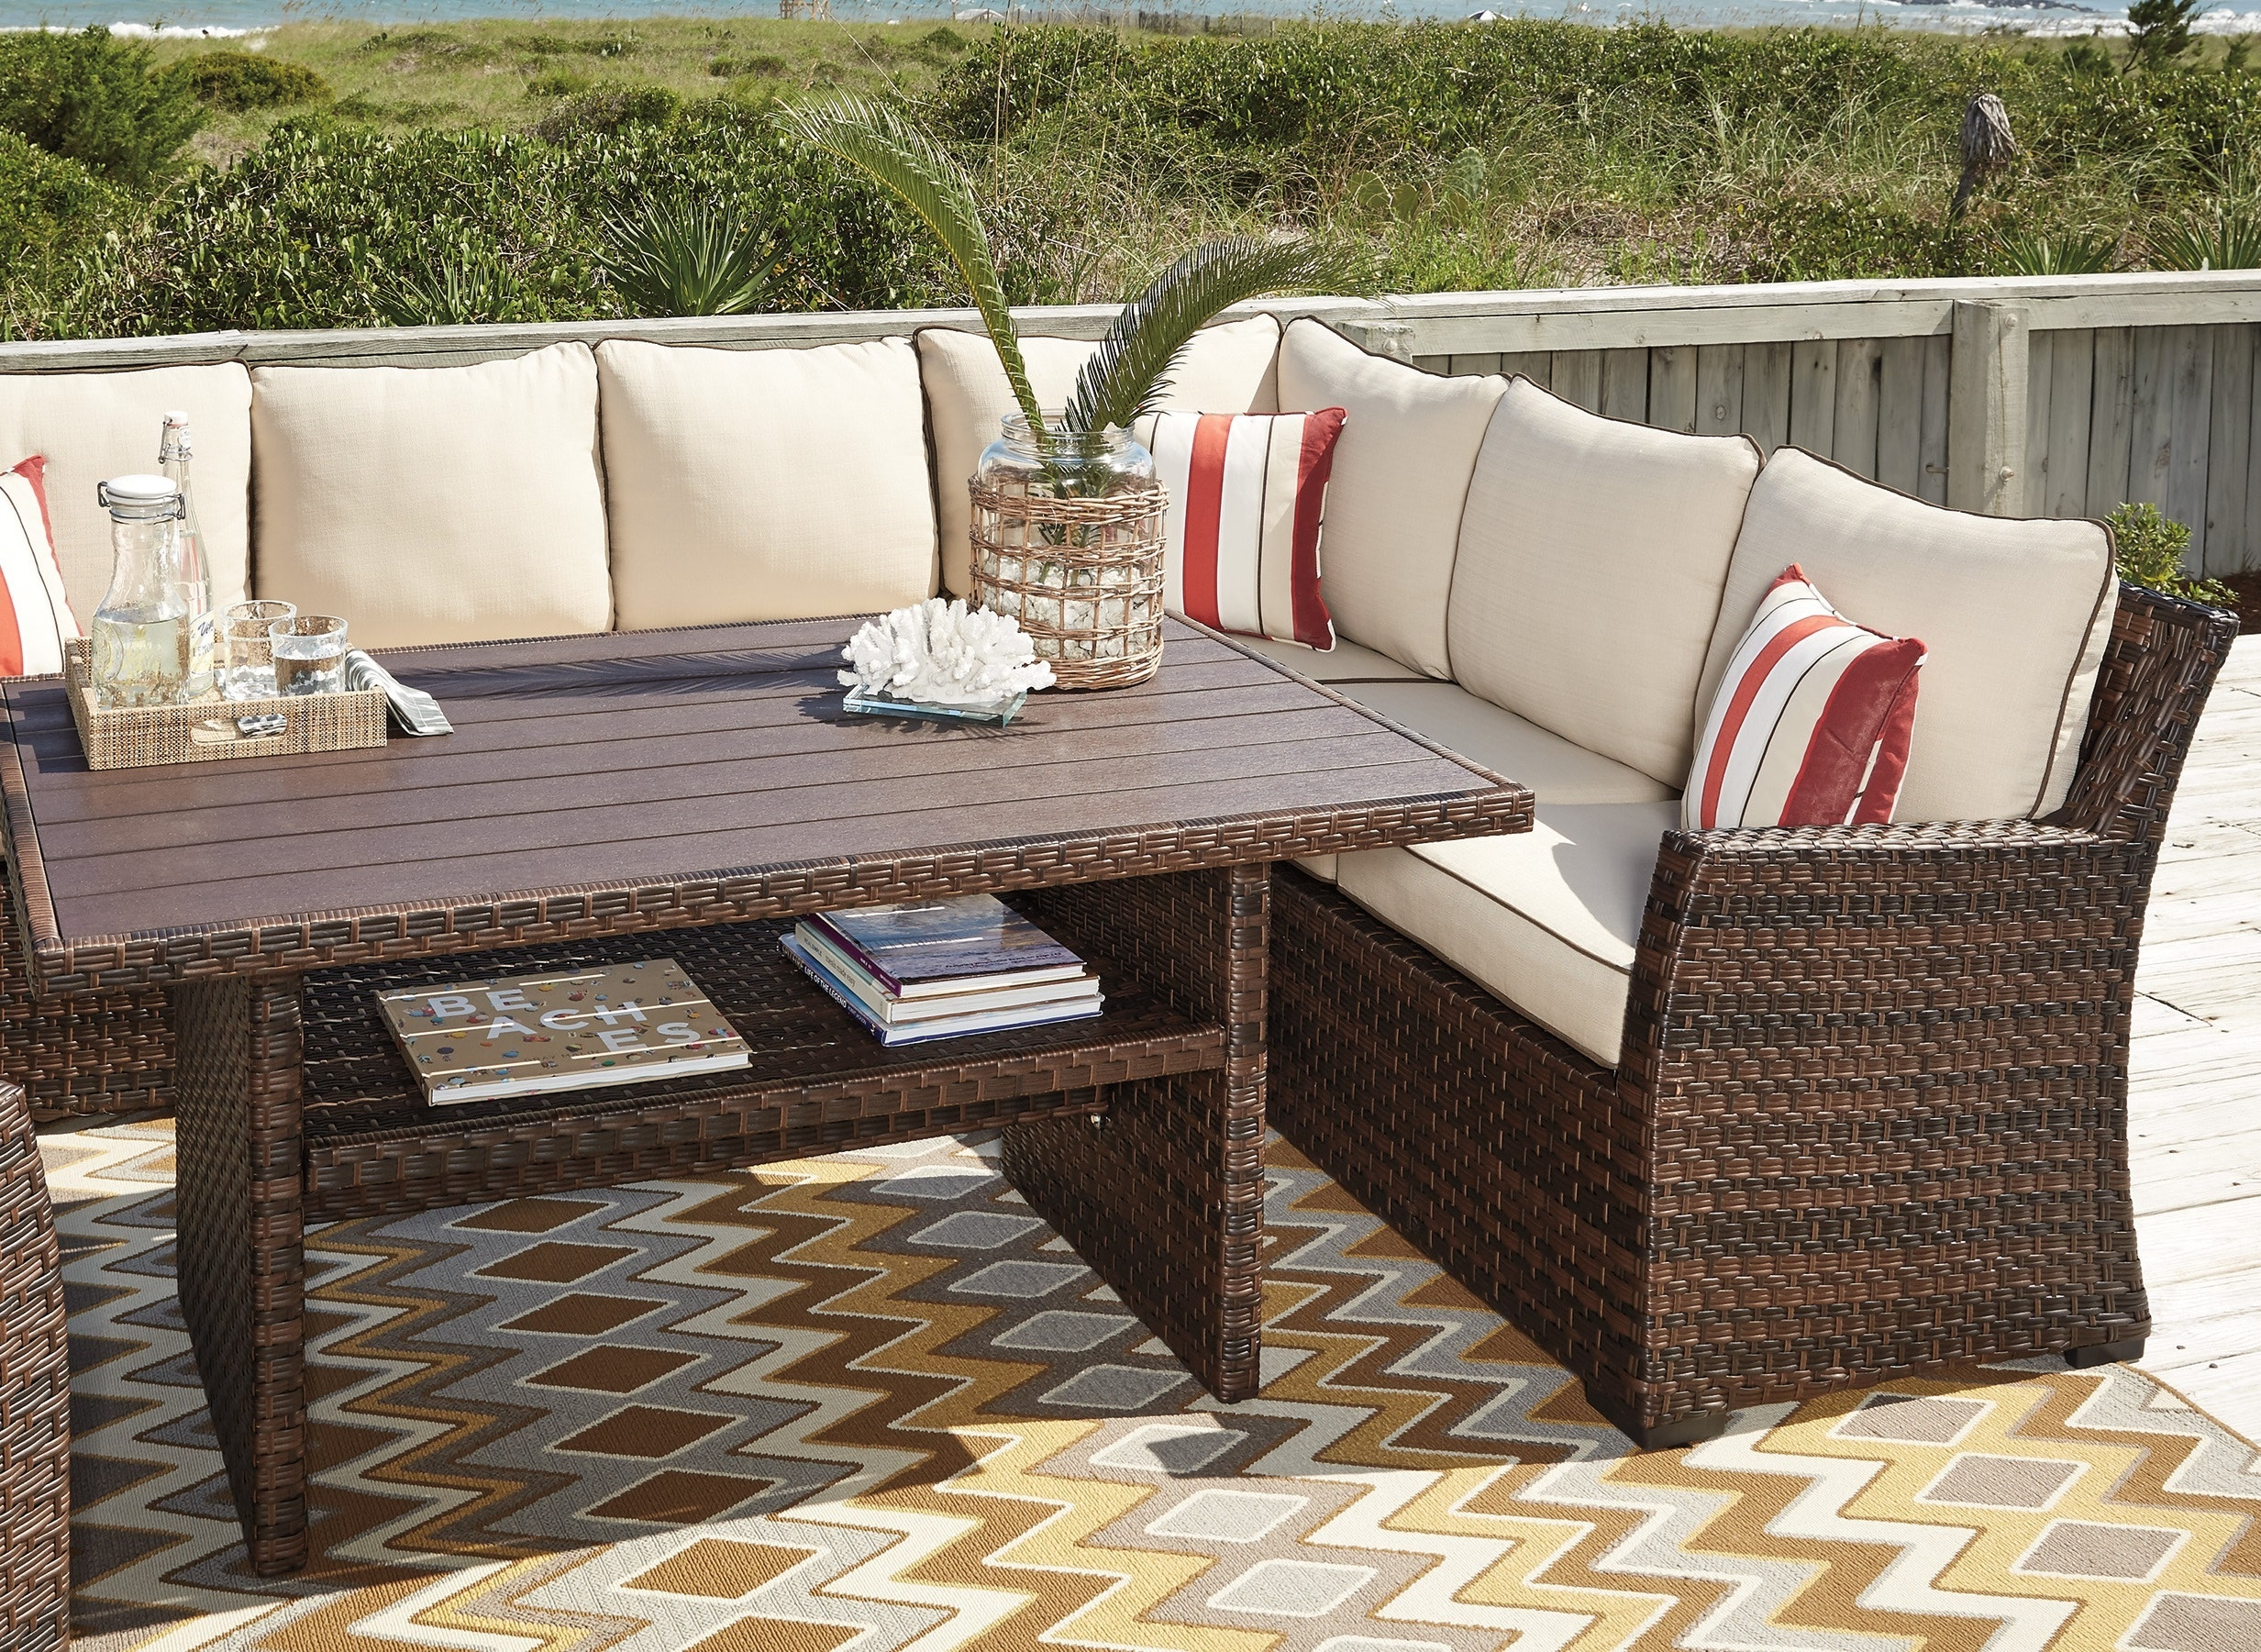 Ashley Outdoor Sectional With Chair And Table P451 822/625